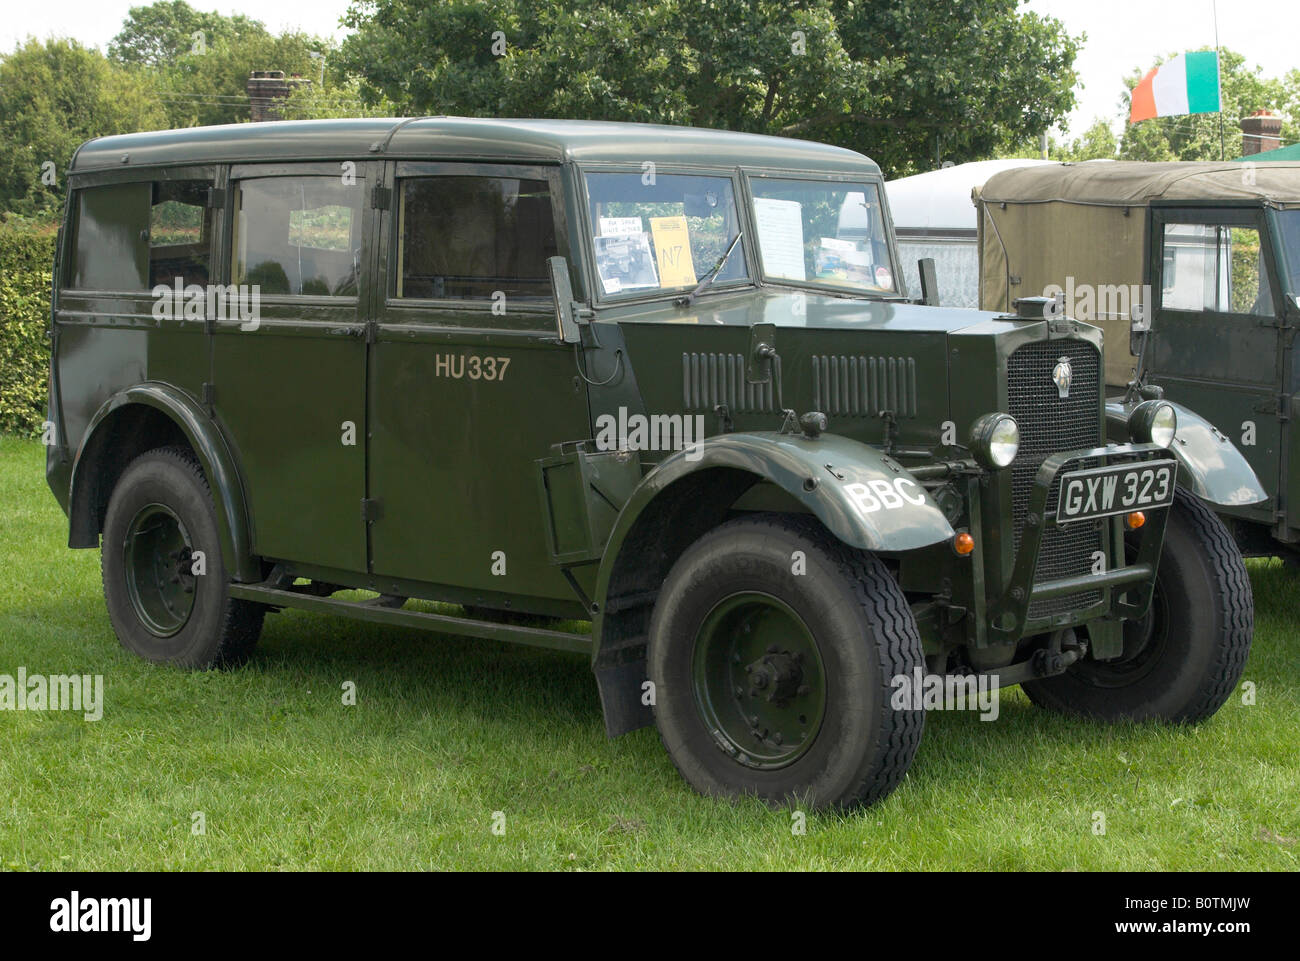 a-humber-4-x-4-heavy-utility-vehicle-on-